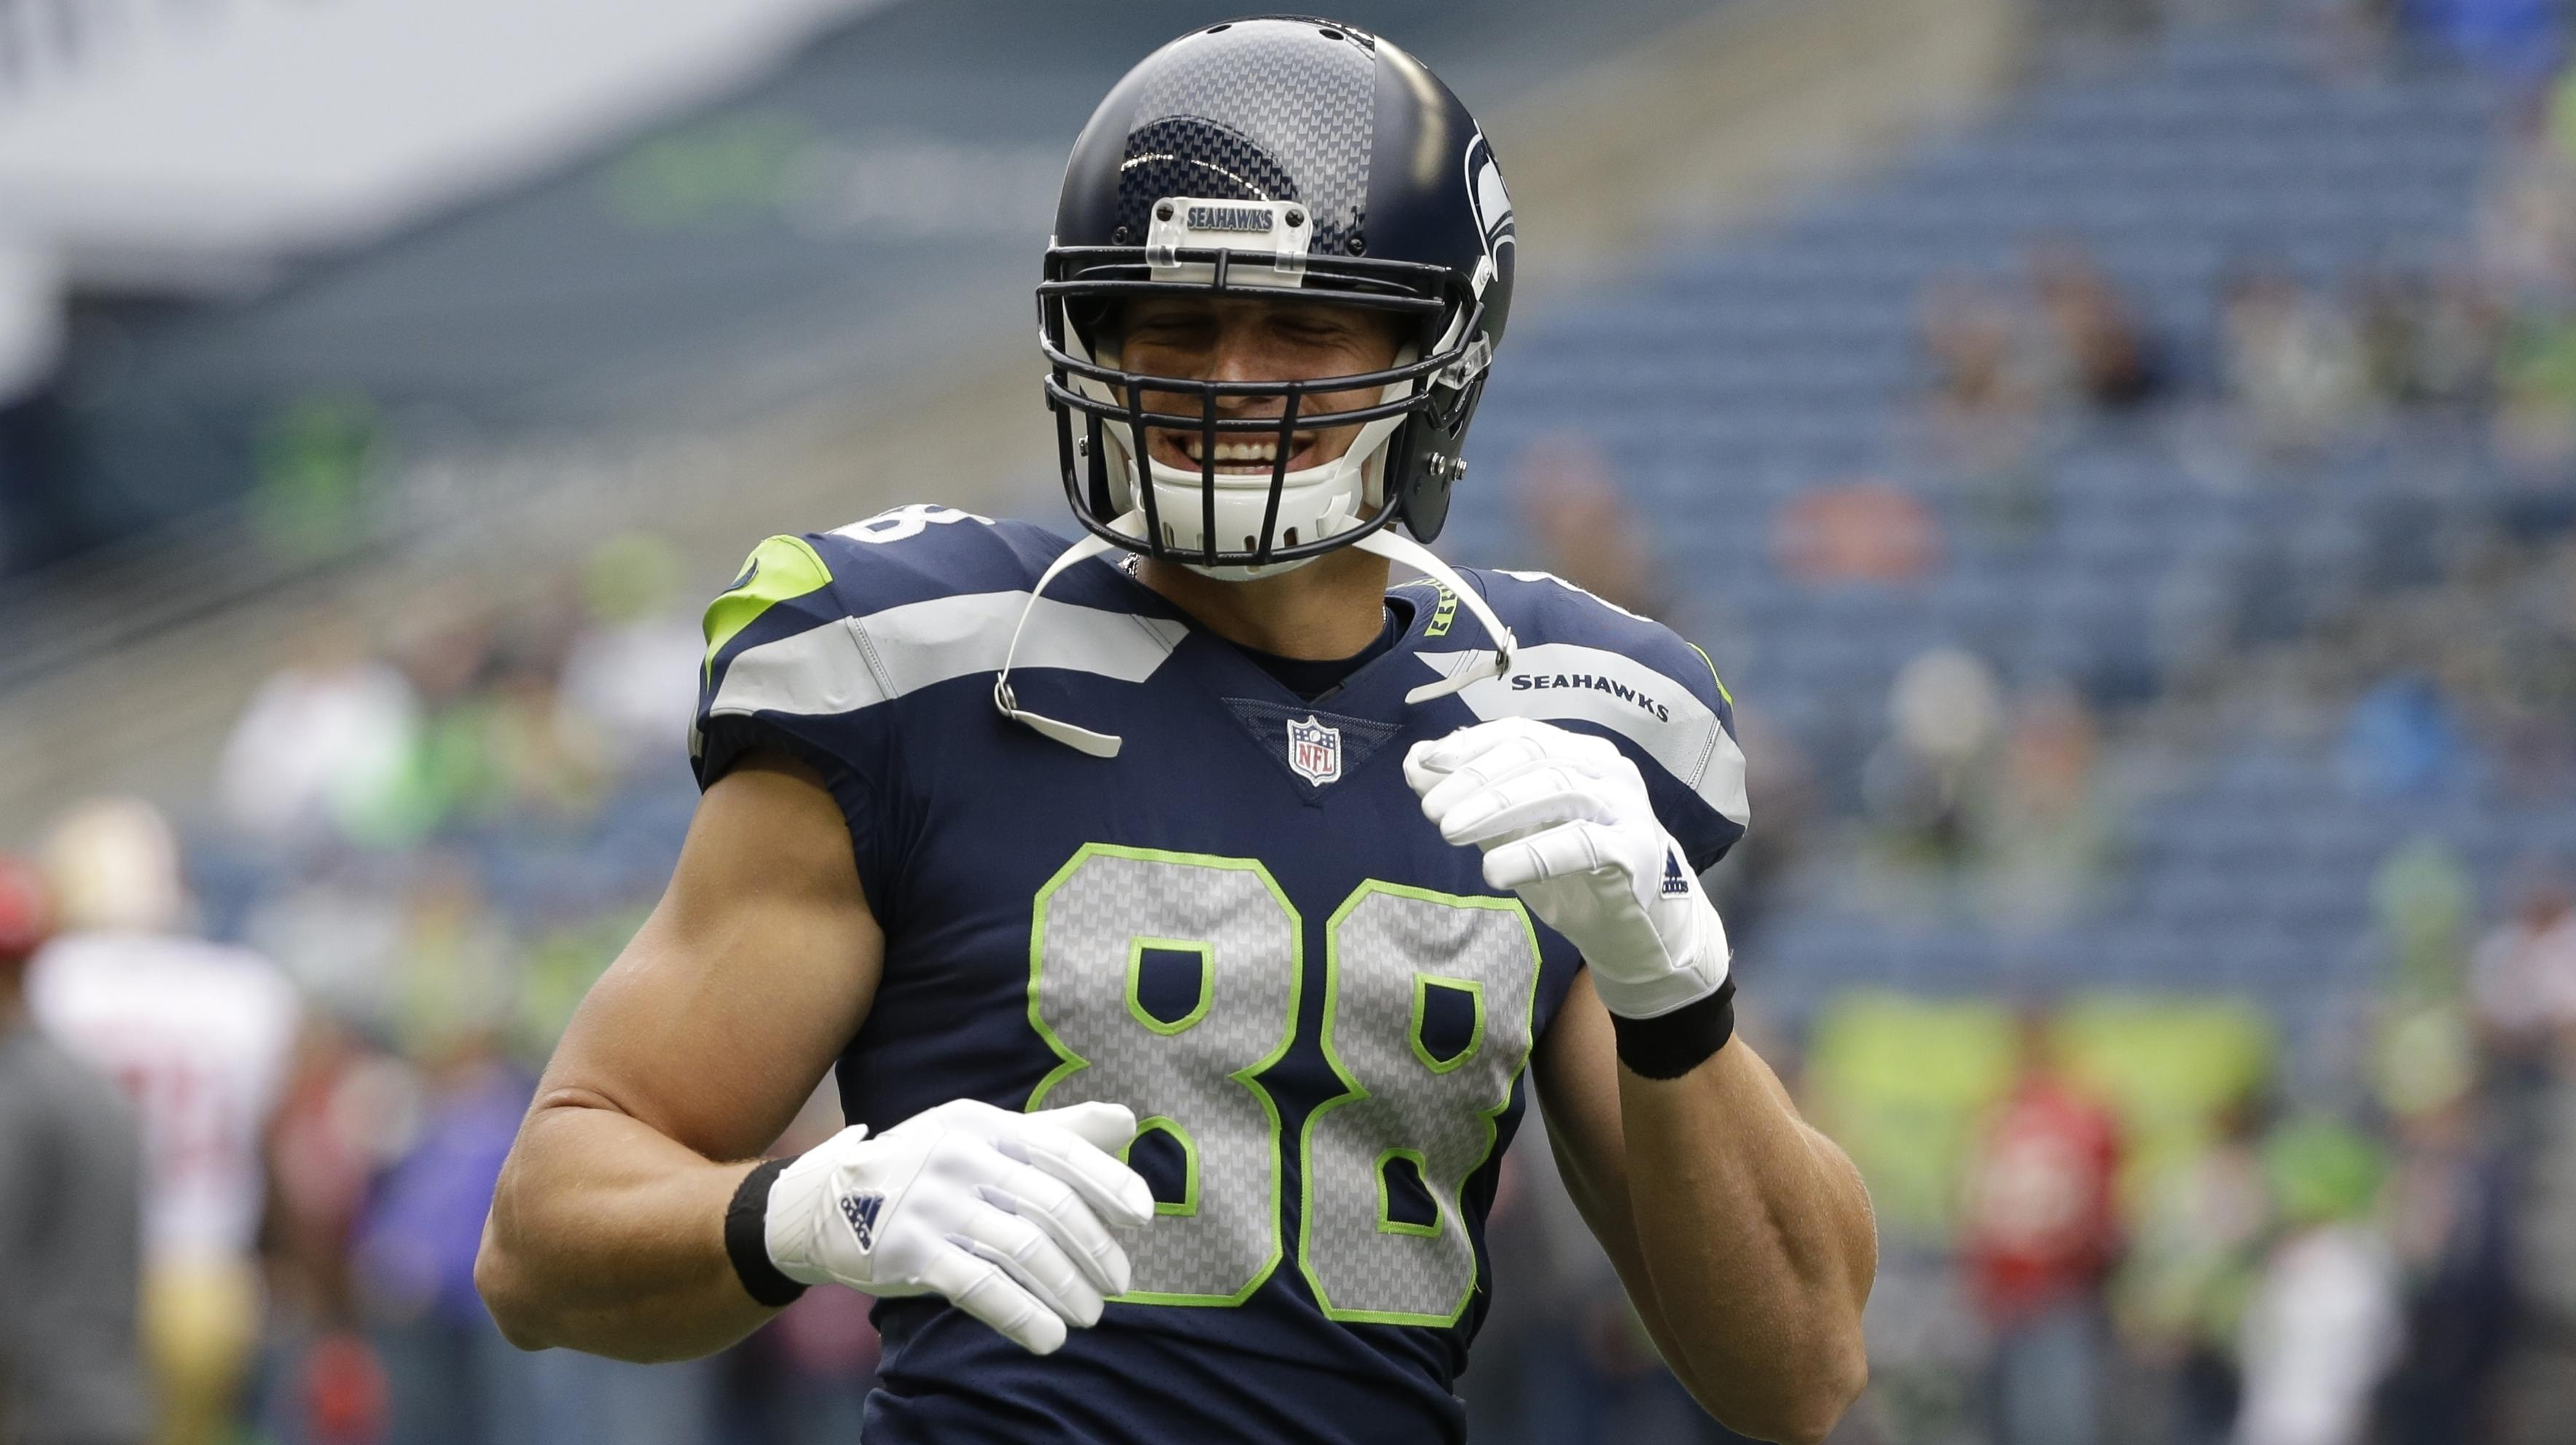 Seahawks Jimmy Graham expected to play despite ankle injury